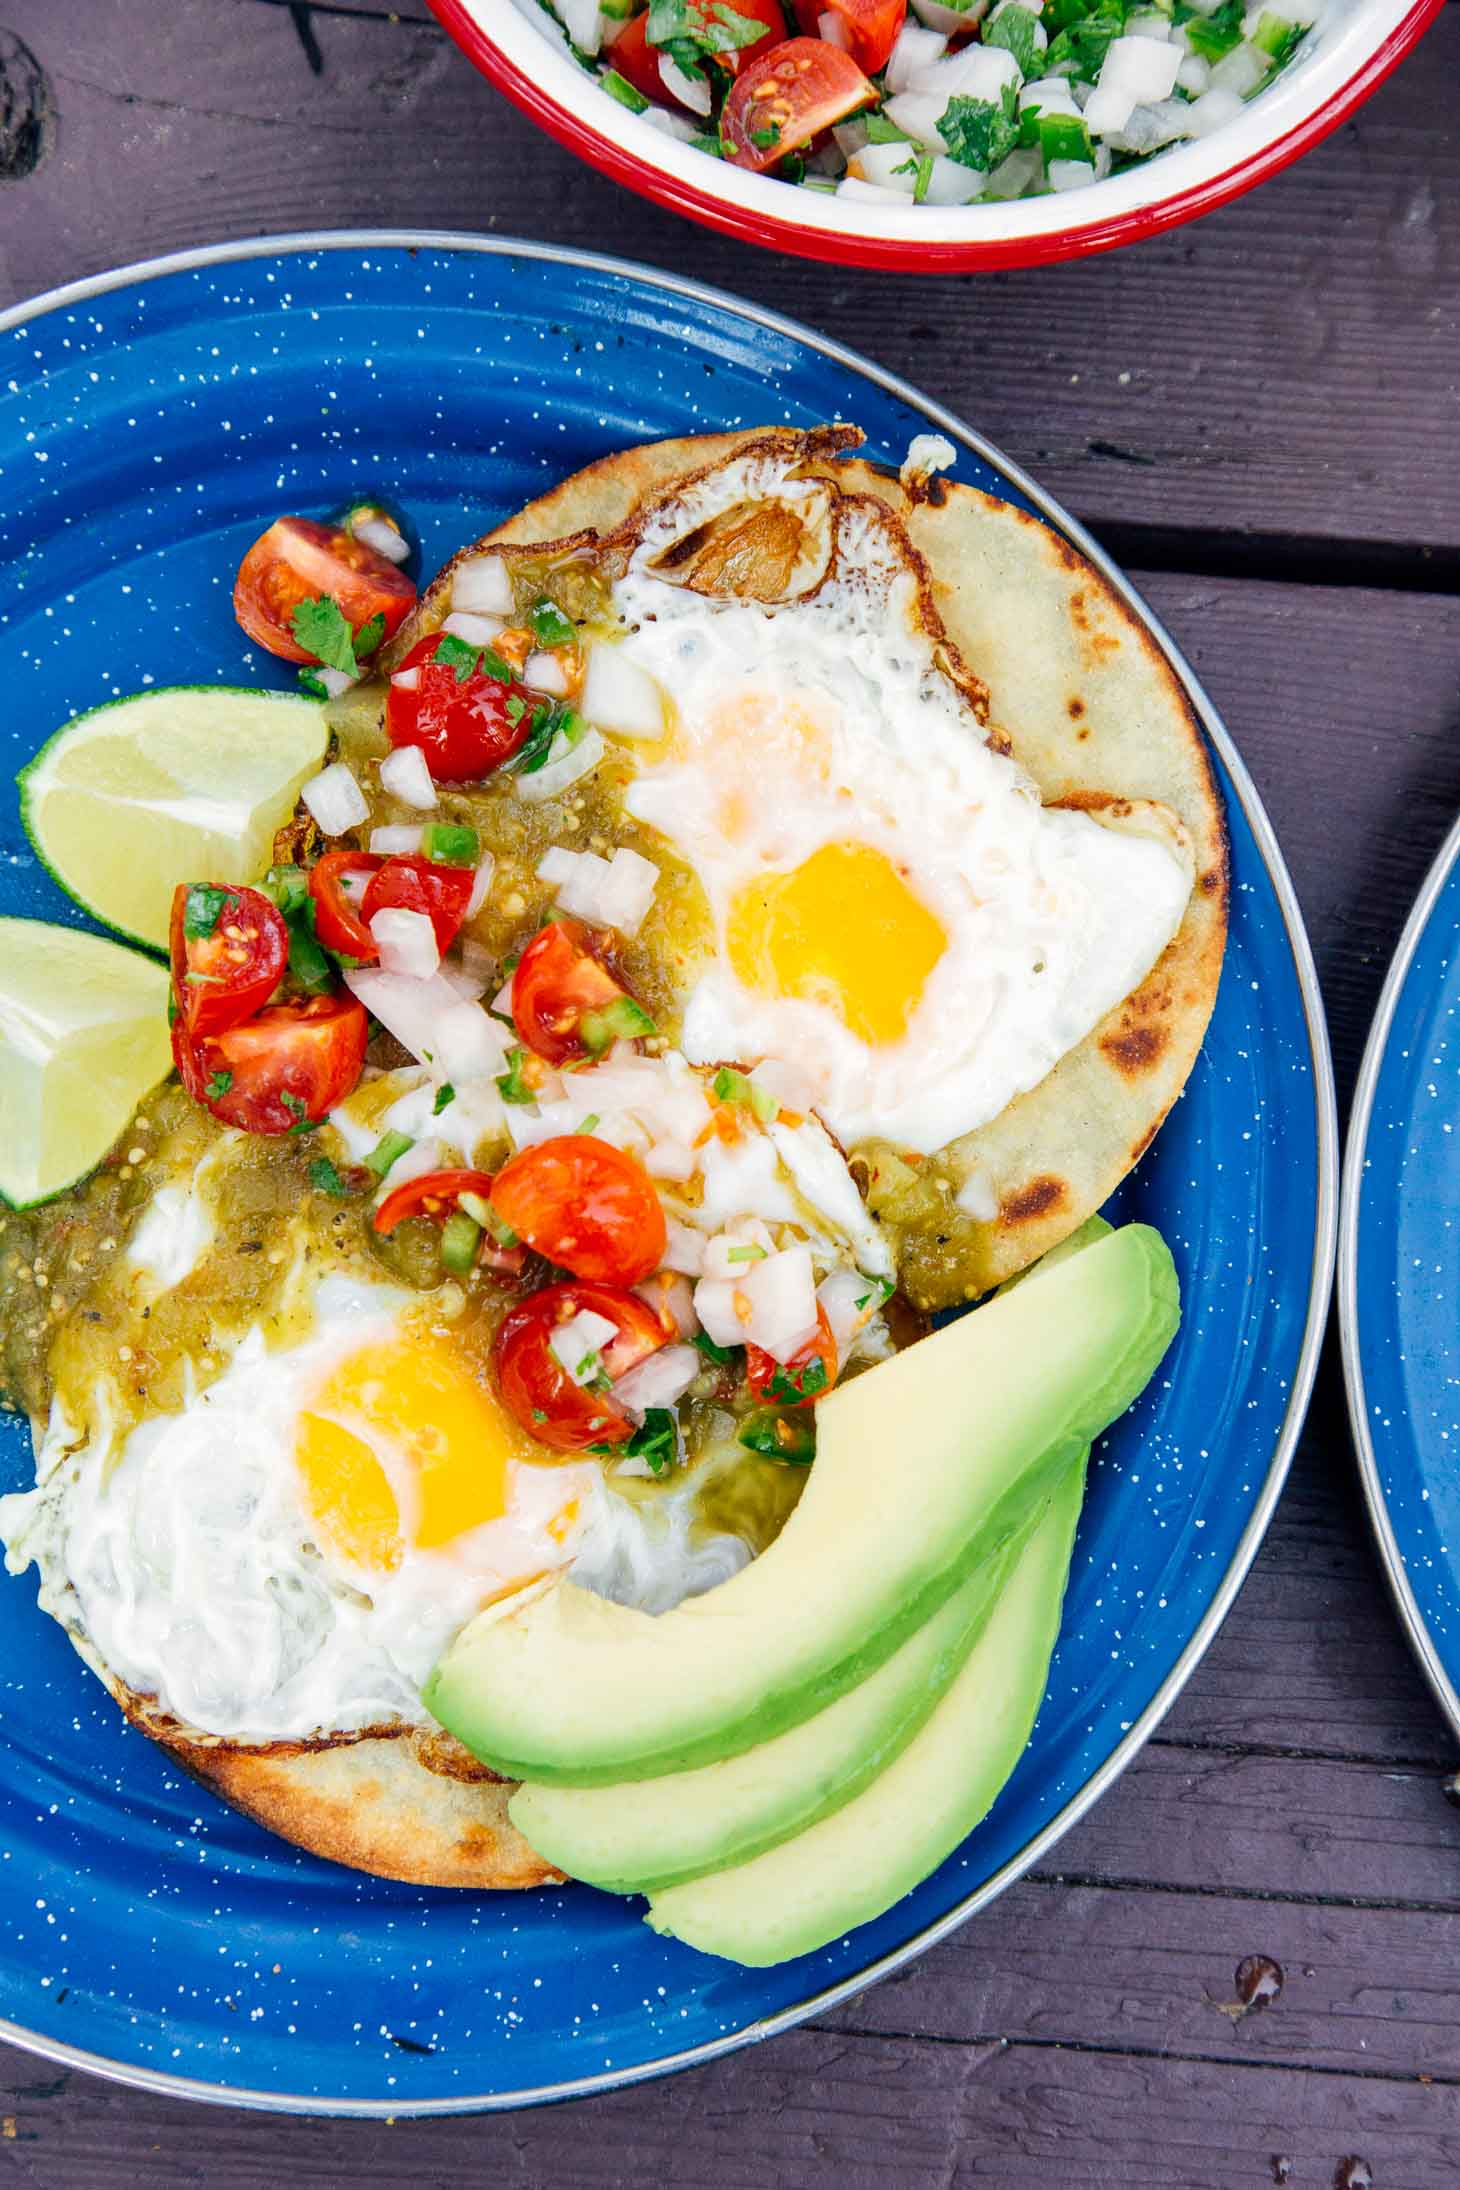 Two tortillas topped with eggs, salsa, and sliced avocado